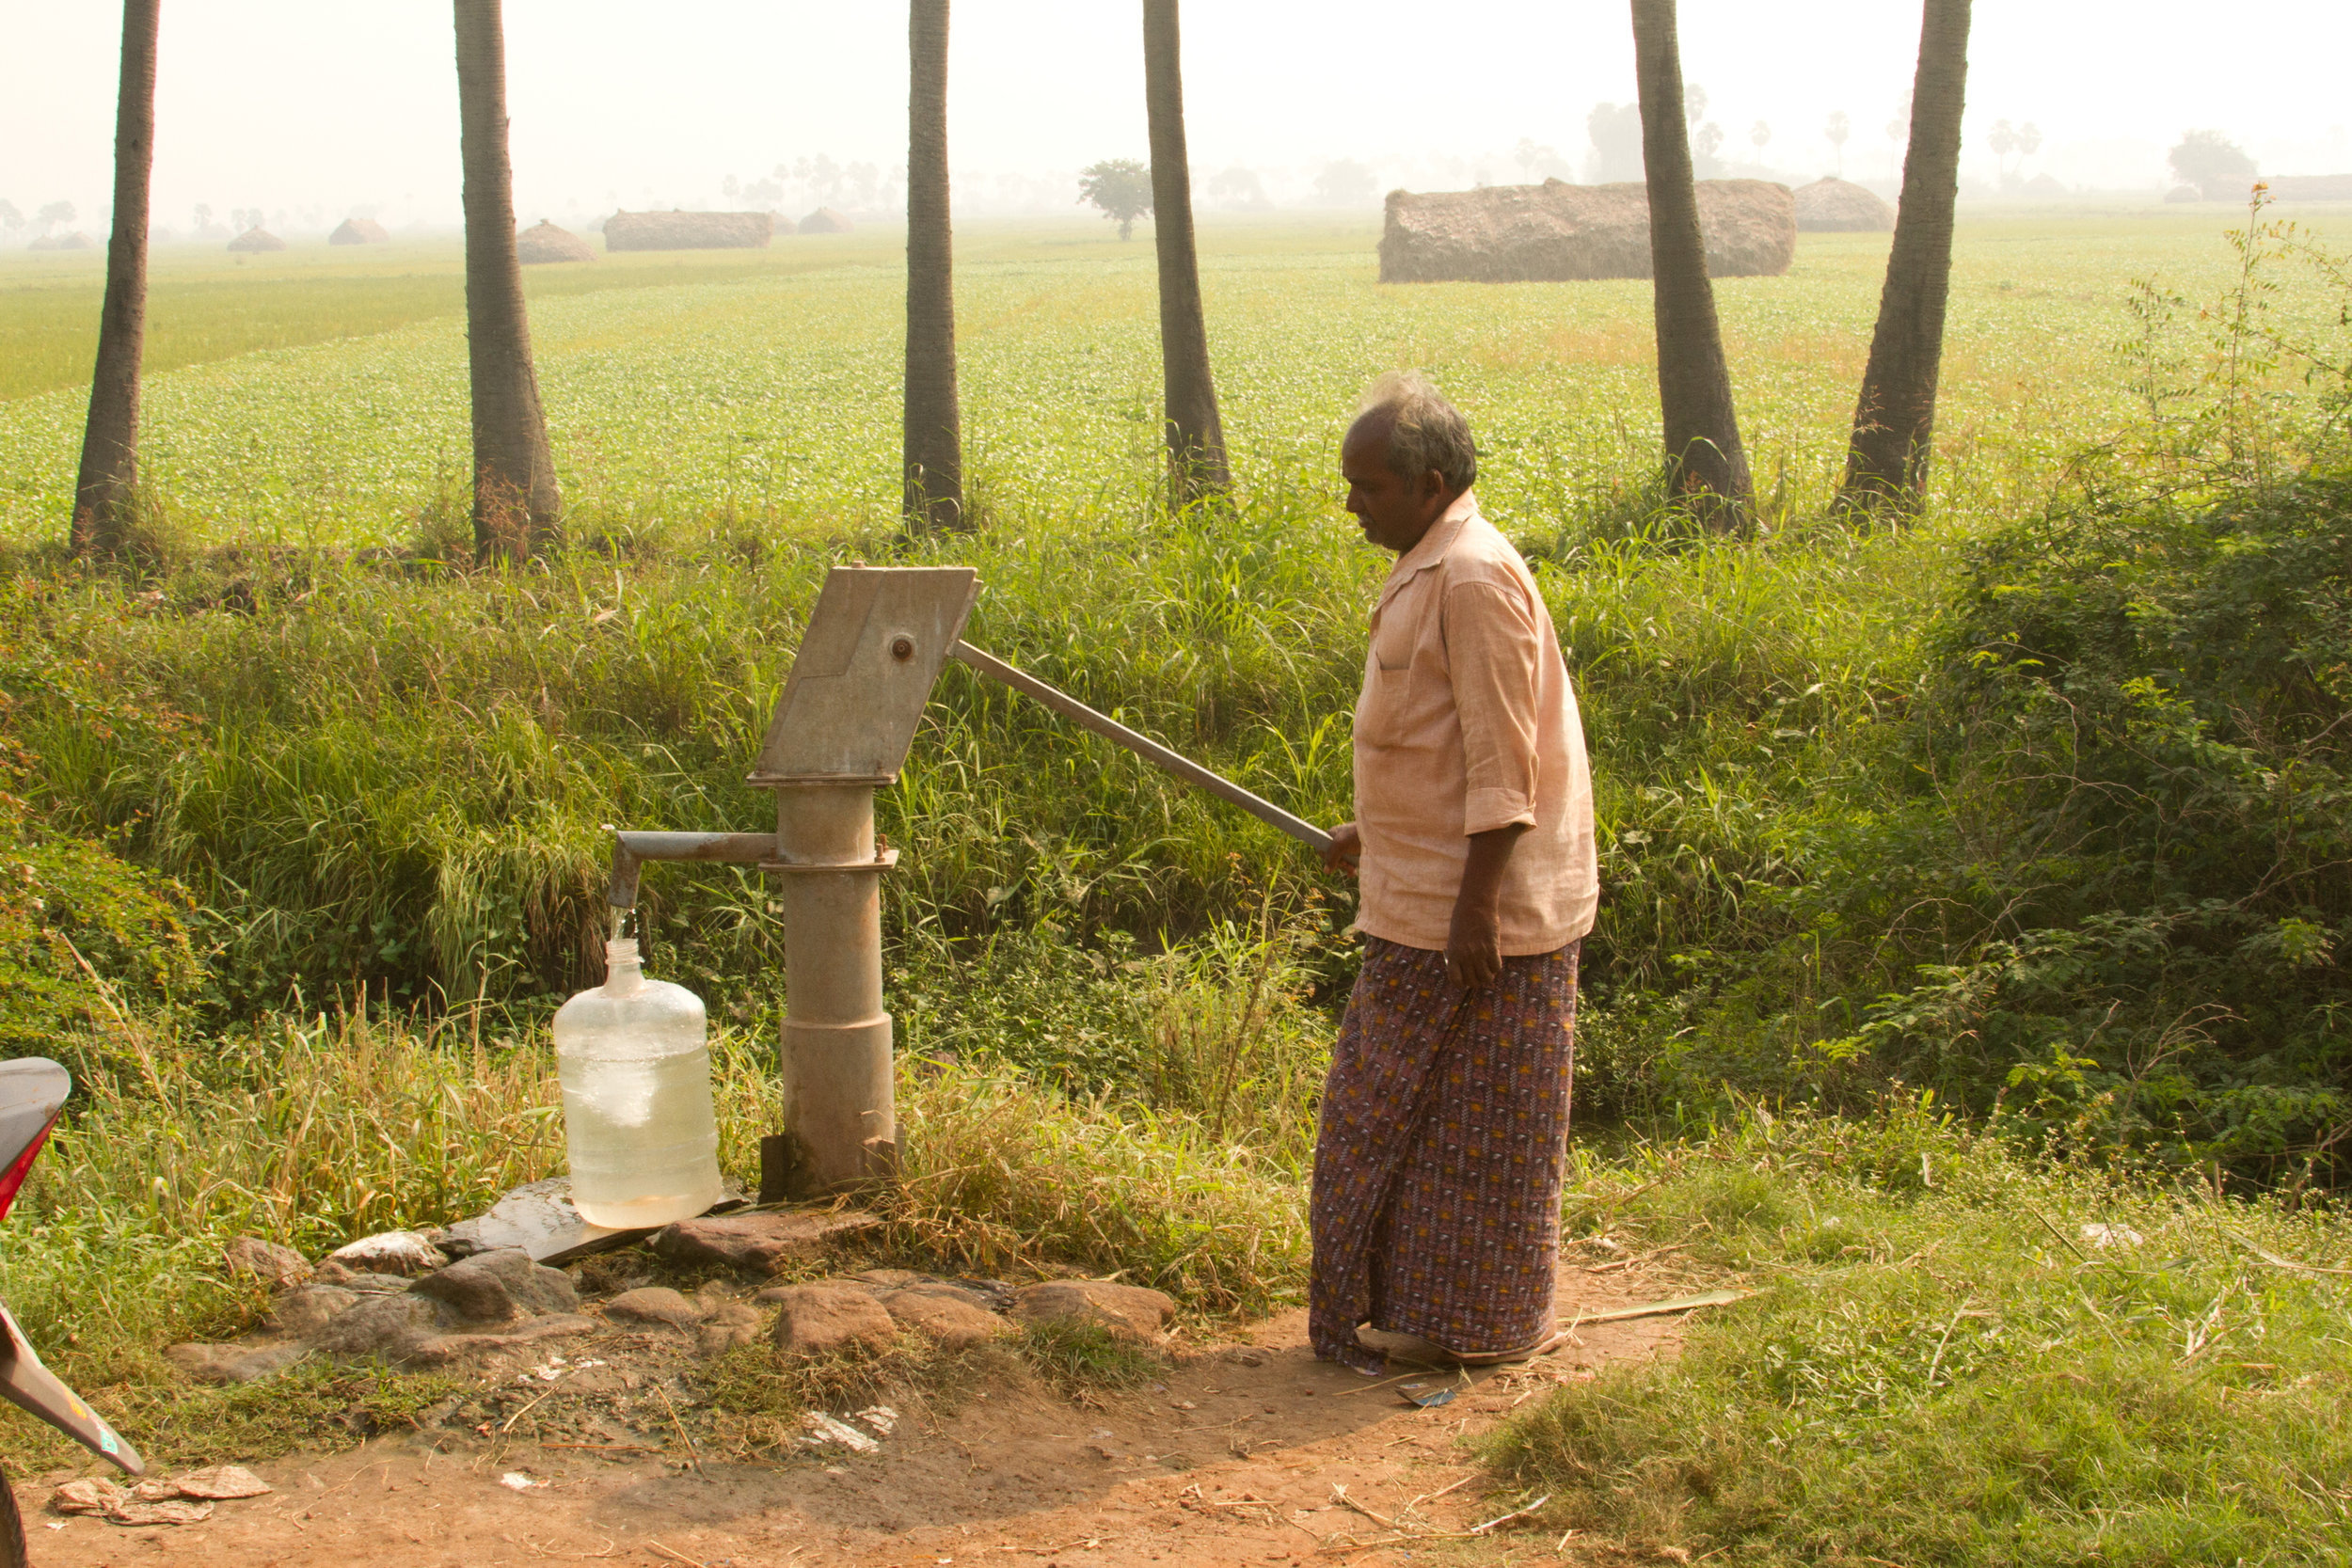 The water well we put in a few years ago. Clean and fresh and saves them from walking miles to get water.